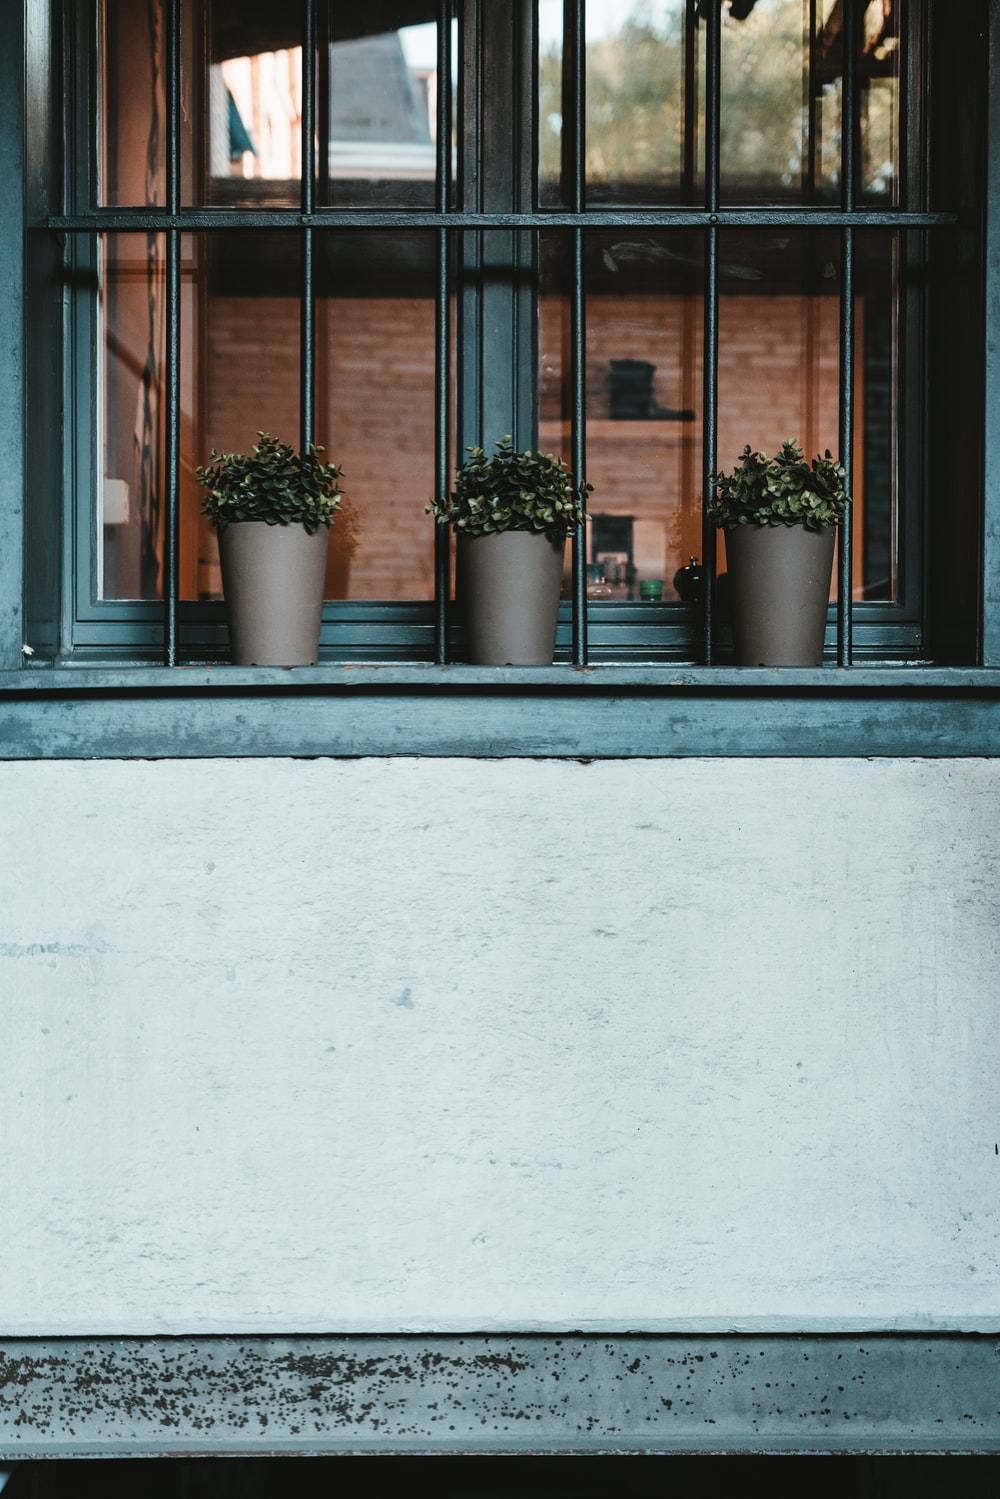 plants in pots on window sill with grille